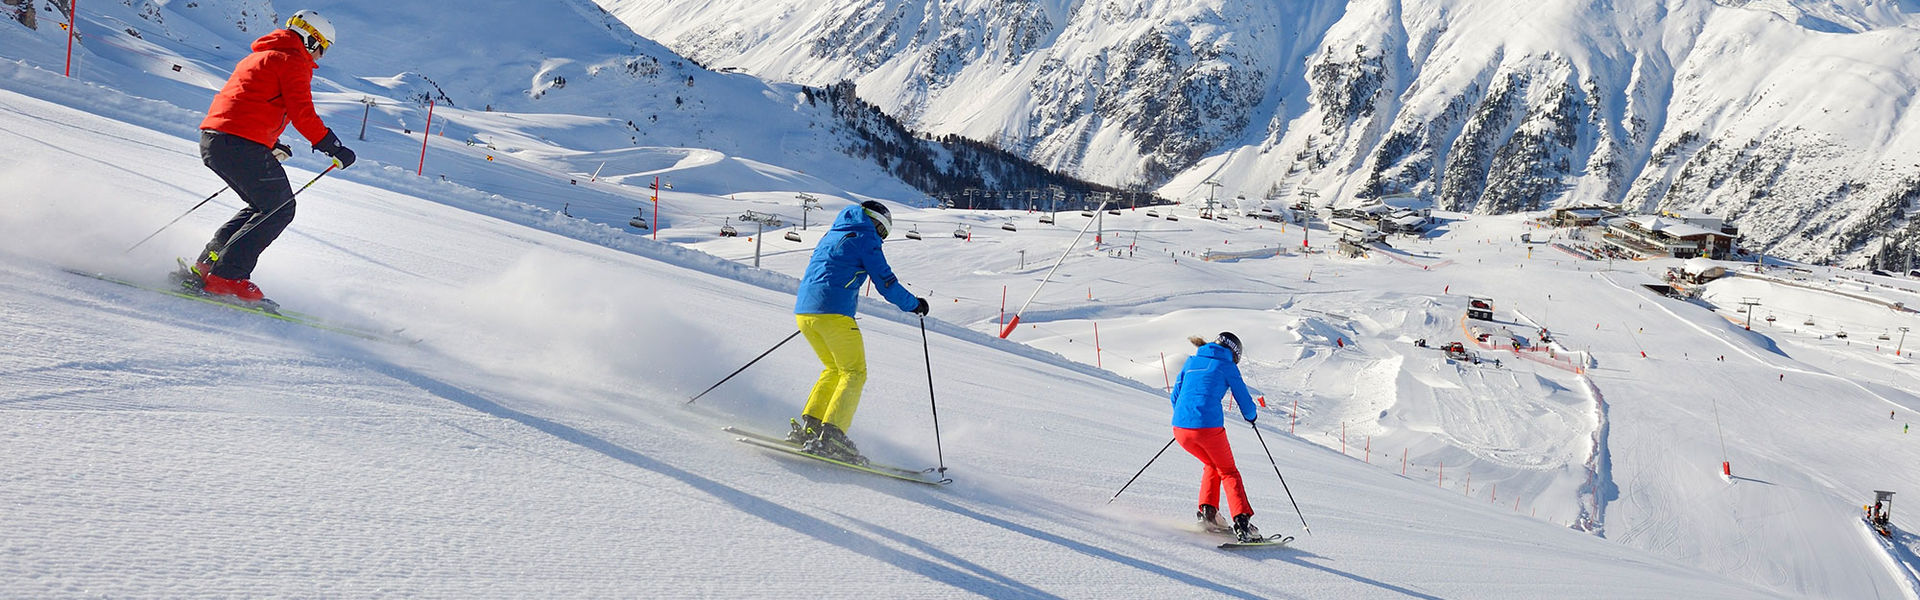 Wintersport in Ischgl,